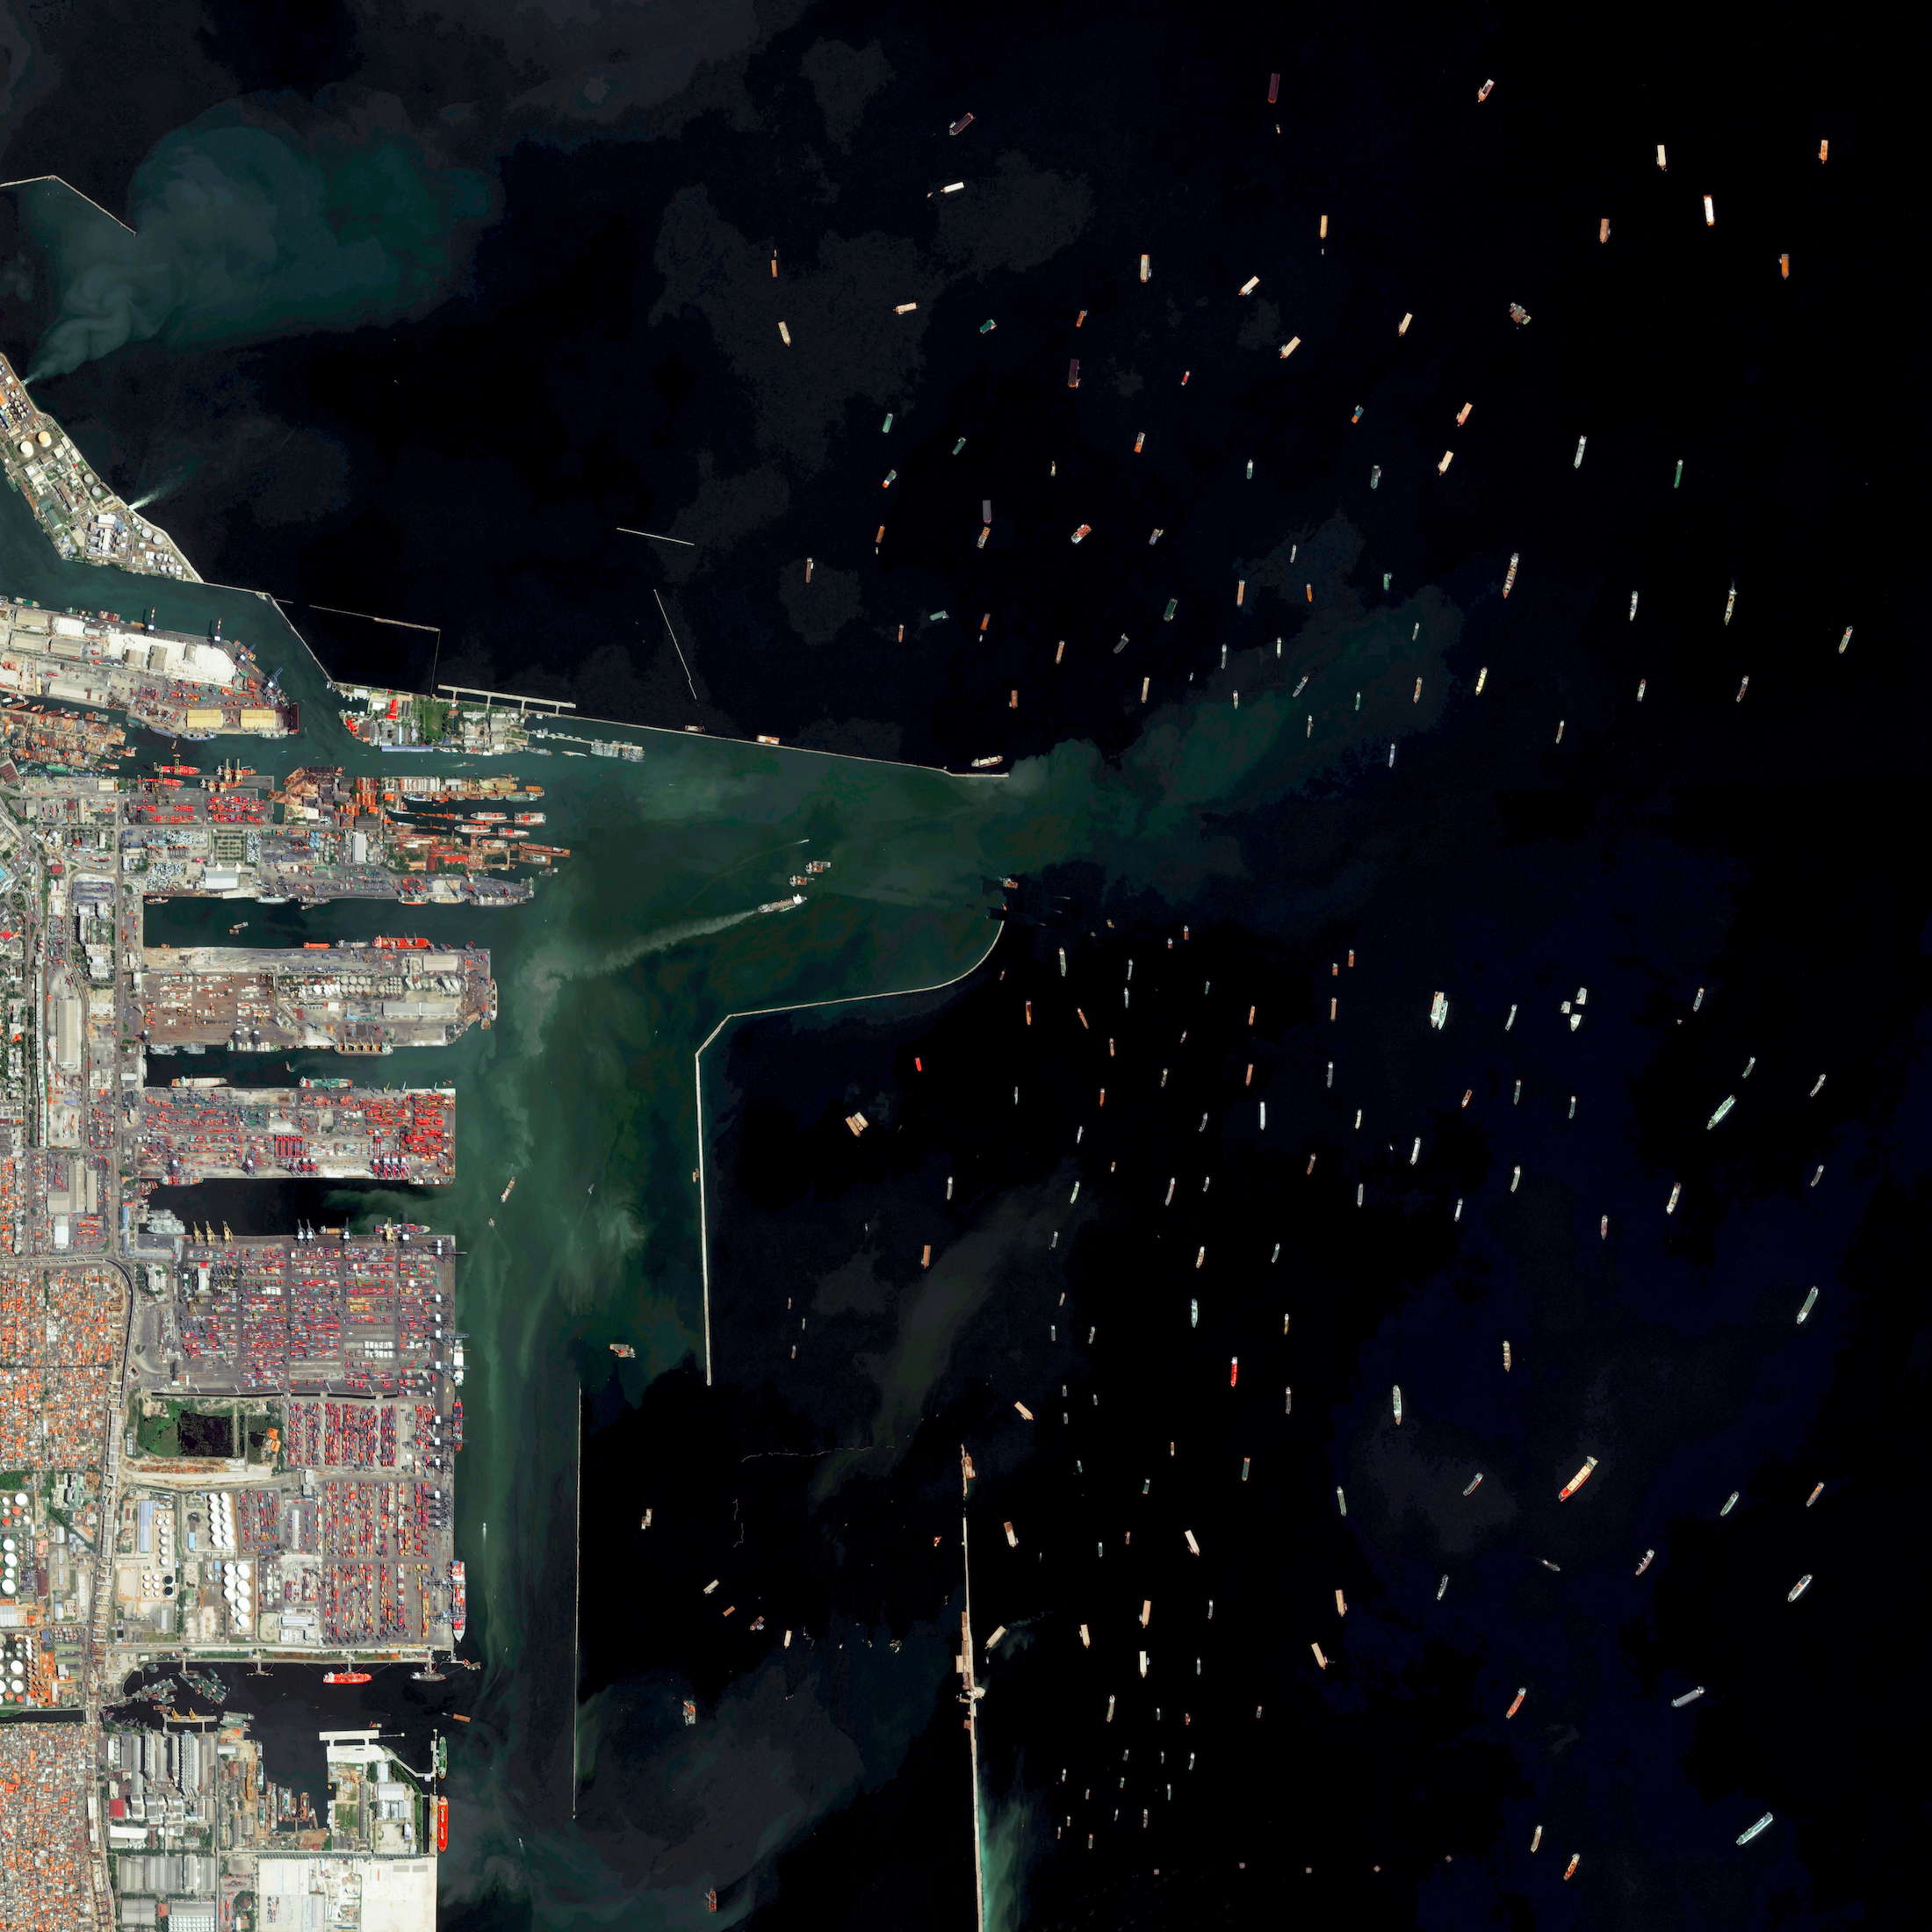 8/31/2016   Port of Tanjung Priok   Jakarta, Indonesia  6.104°S 106.8865°E    Dozens of massive cargo ships and tankers - some weighing up to 300,000 tons - are anchored outside the Port of Tanjung Priok in Jakarta, Indonesia. The facility is the country's busiest and most advanced seaport, handling more than 50% of Indonesia's trans-shipment cargo. The port is also among the least efficient in all of Southeast Asia, due to slow customs handling and limited docking capacity.